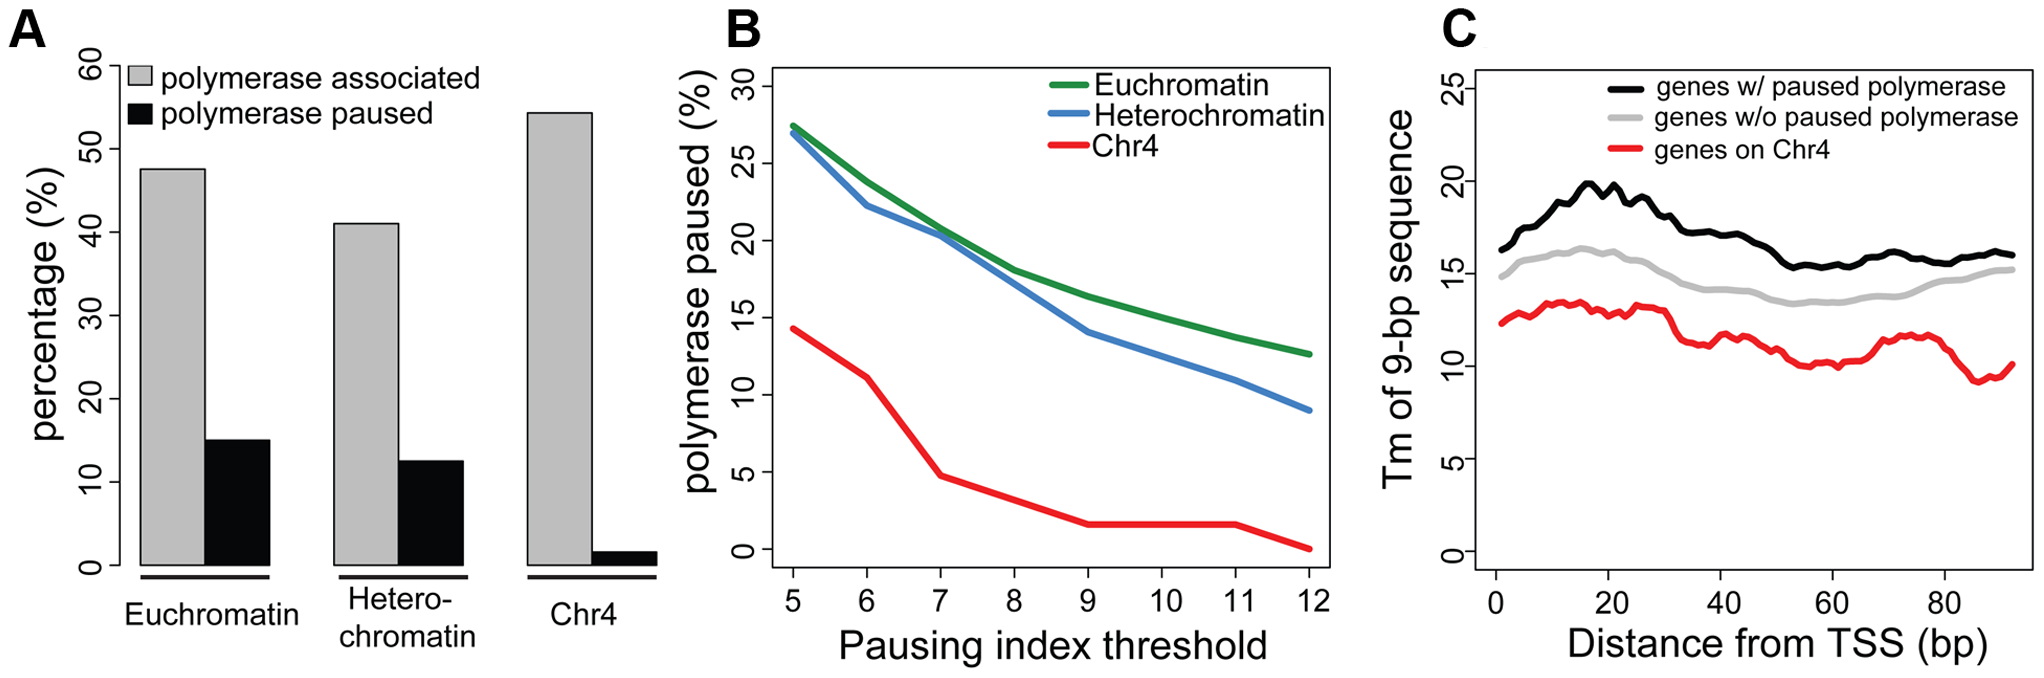 Chromosome 4 has a very low incidence of polymerase pausing identified by GRO-seq data.